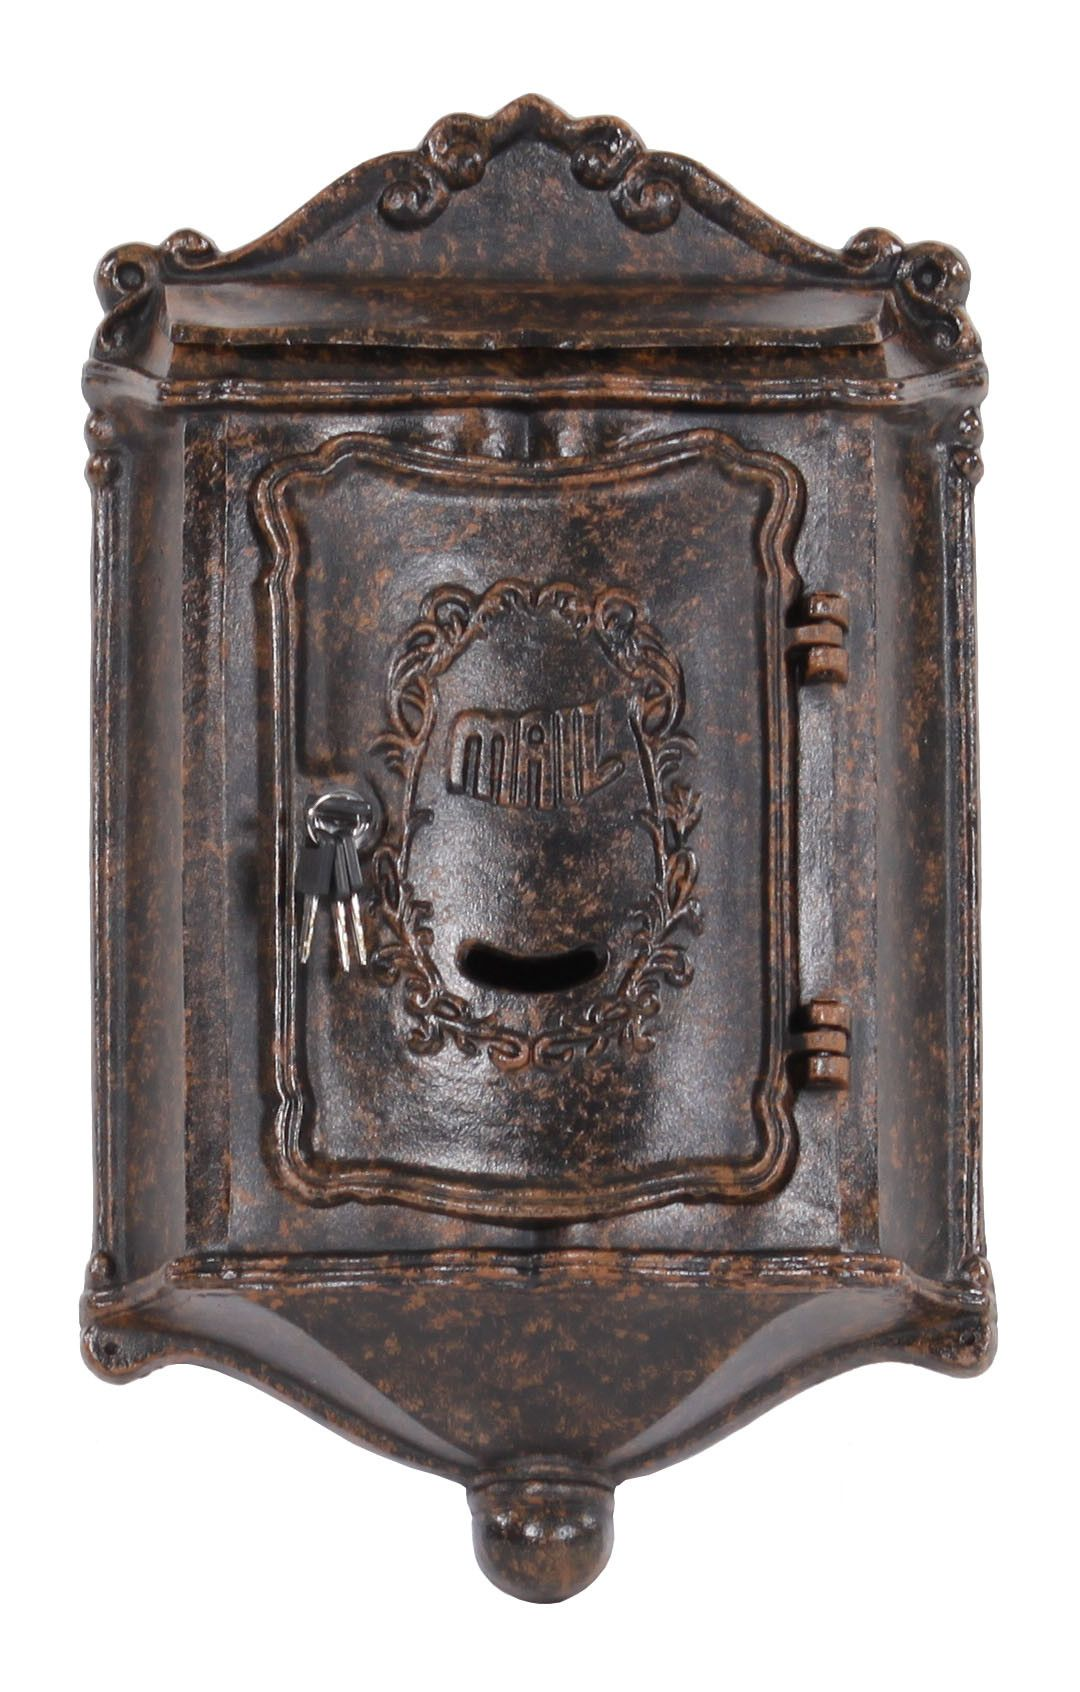 Colonial Locking Wall Mounted Mailbox Antique Mailbox Vintage Mailbox Wall Mount Mailbox